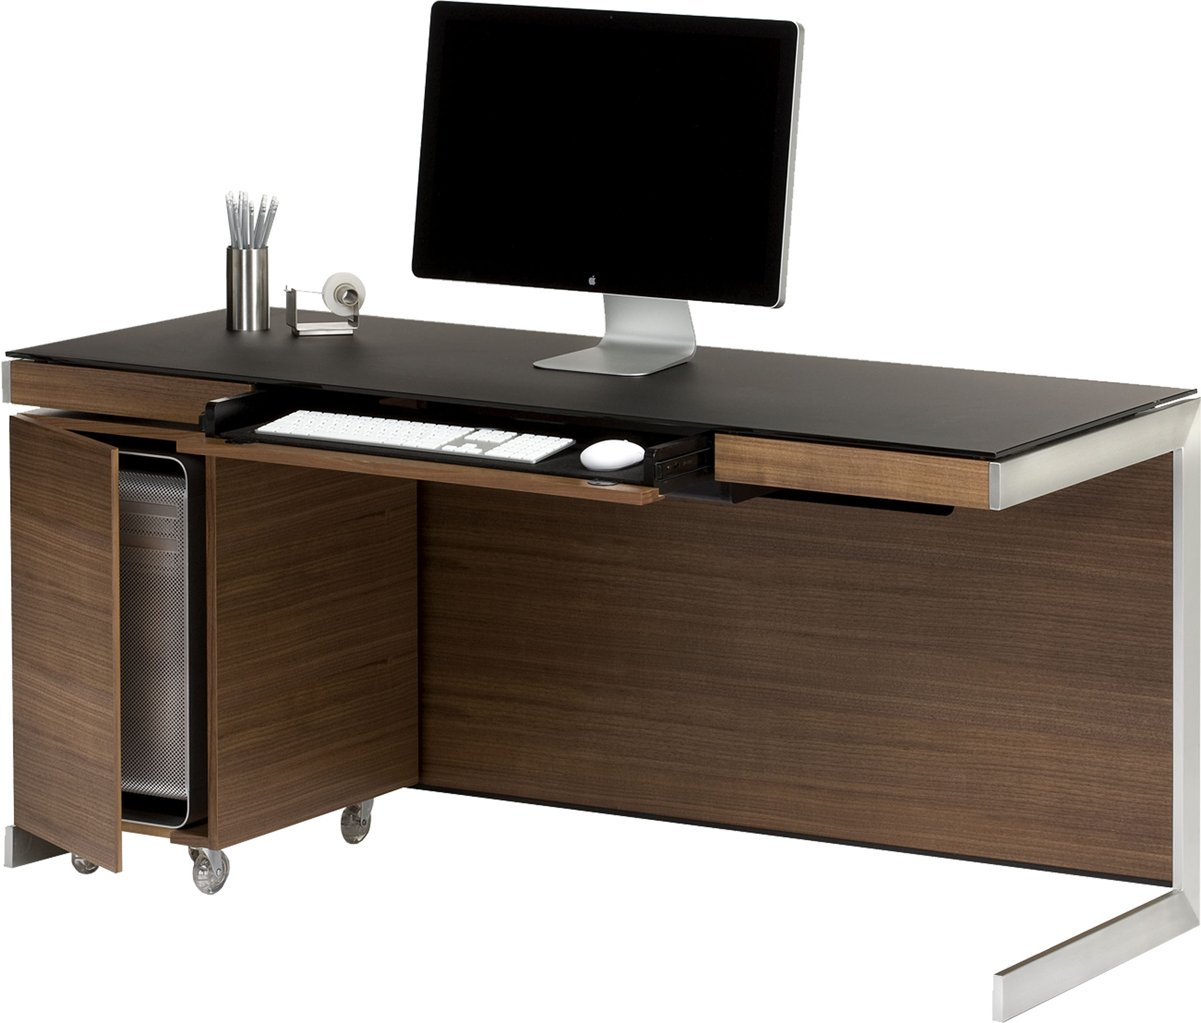 Bdi sequel 6001 walnut computer desk - Walnut office desk ...